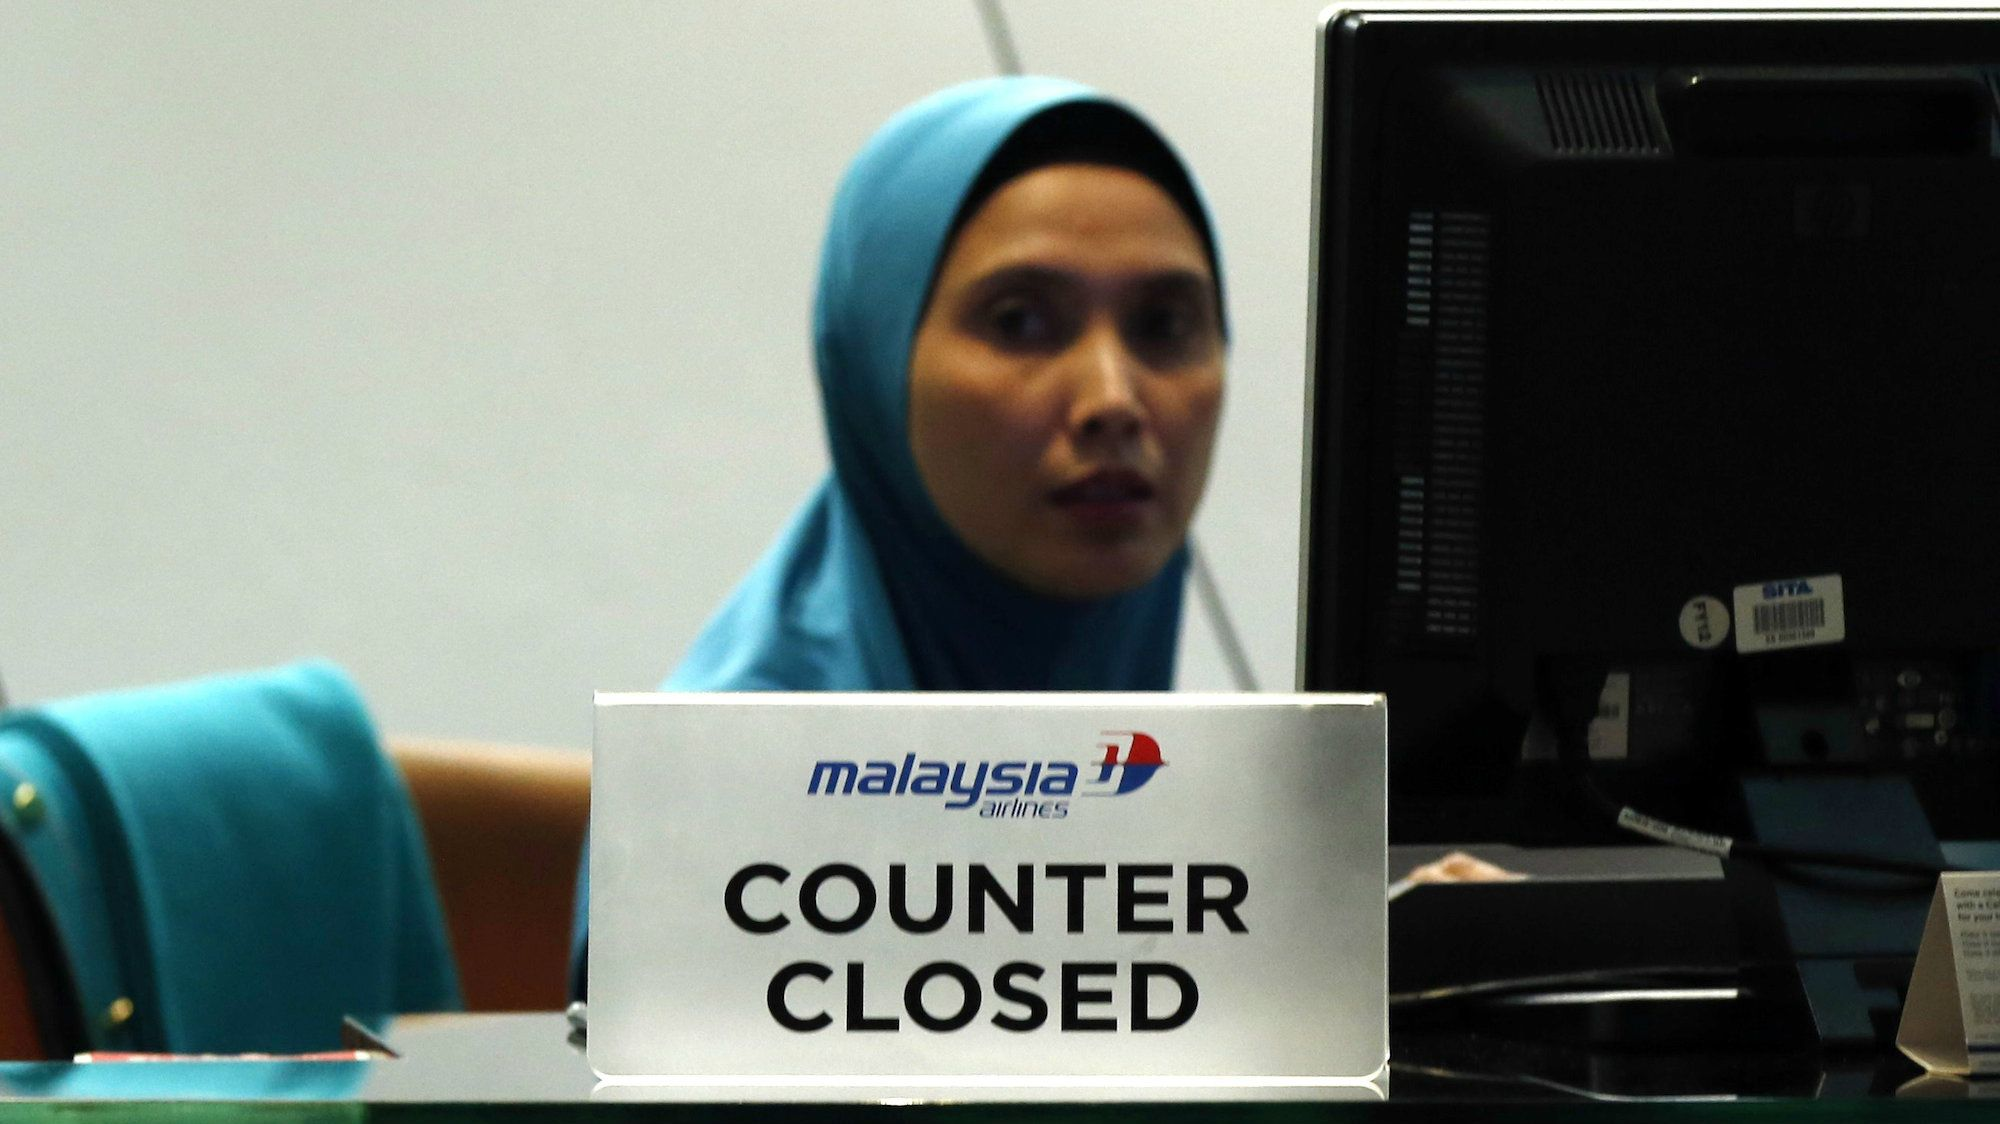 A staff member sits behind a closed Malaysia Airlines desk at Kuala Lumpur International Airport.